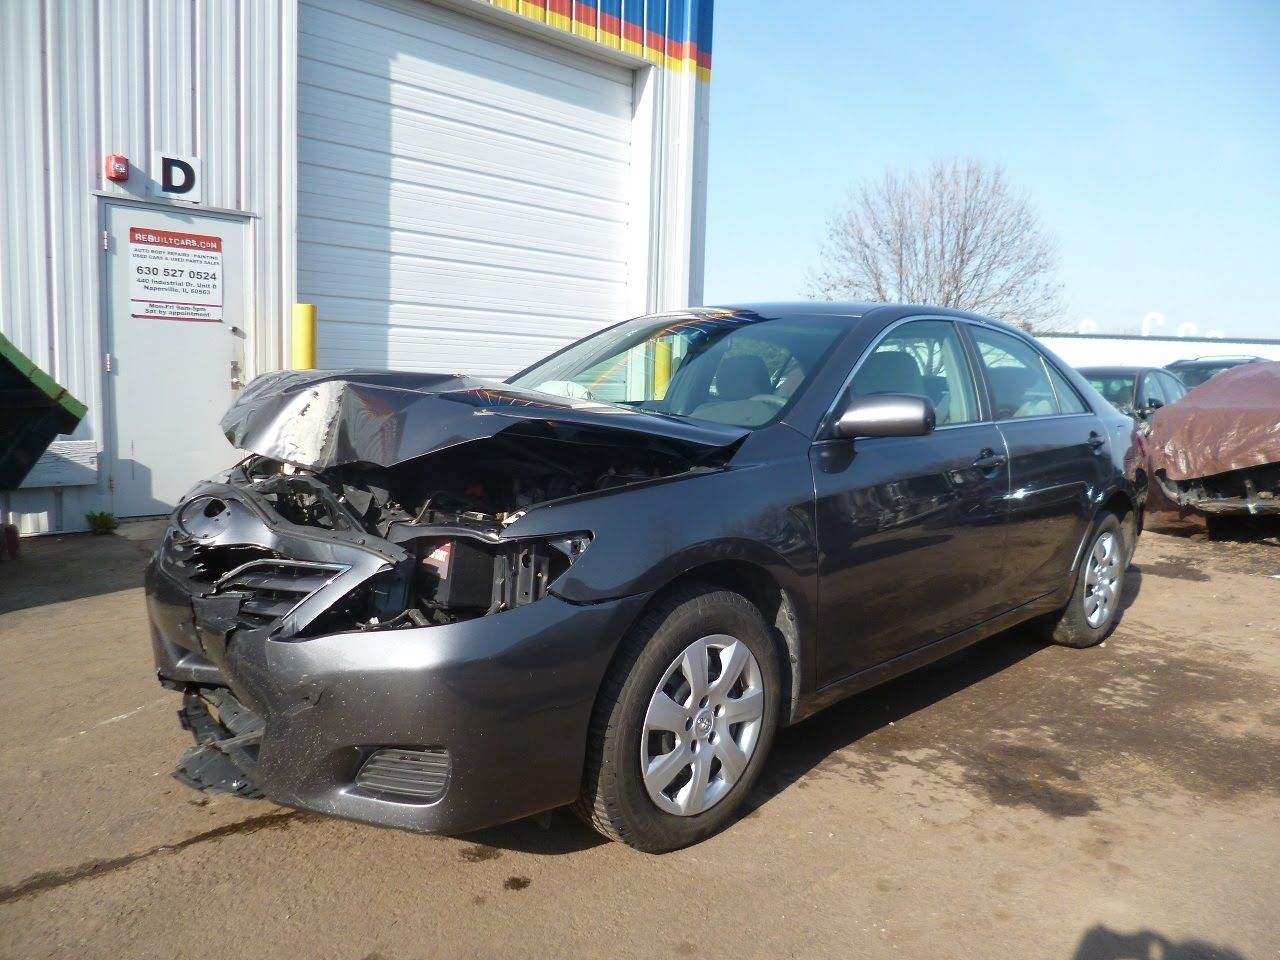 Sell Salvaged Car | Sell Your Salvaged Car | Pinterest | Fast cash ...